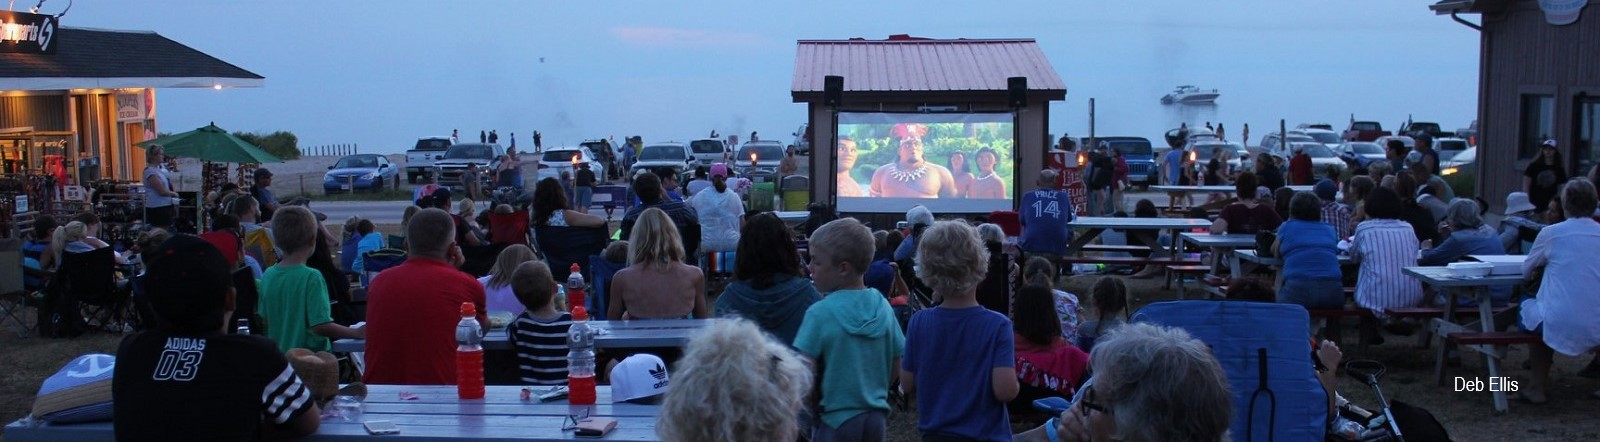 Photo of movie night in Sauble Beach by Deb Eillis